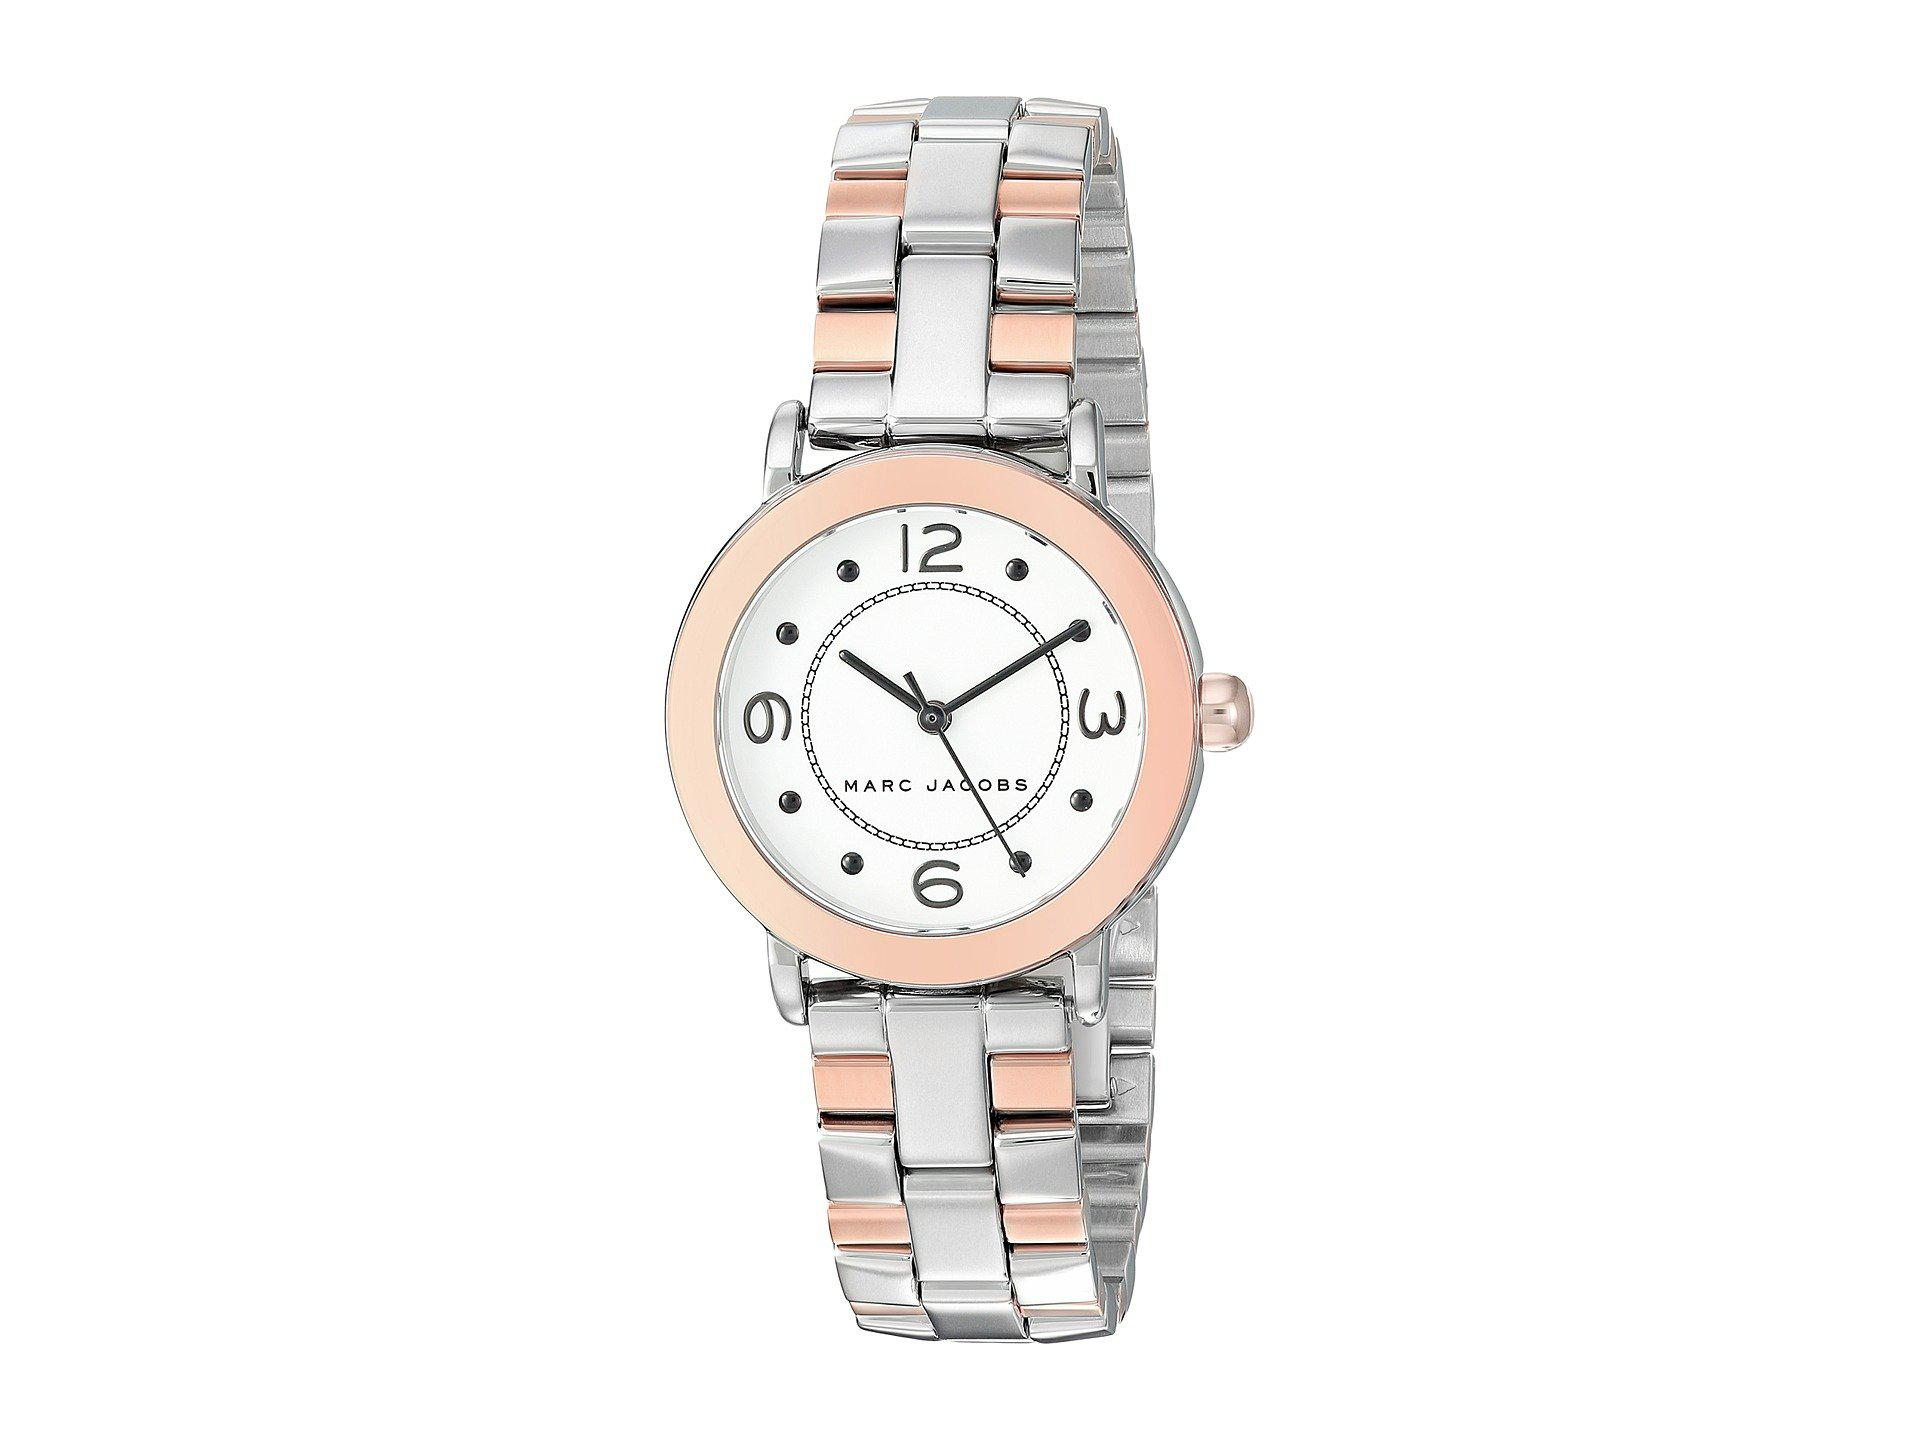 Marc Jacobs Womens Riley White Leather Watch Mj1517 Details Mj1438 By